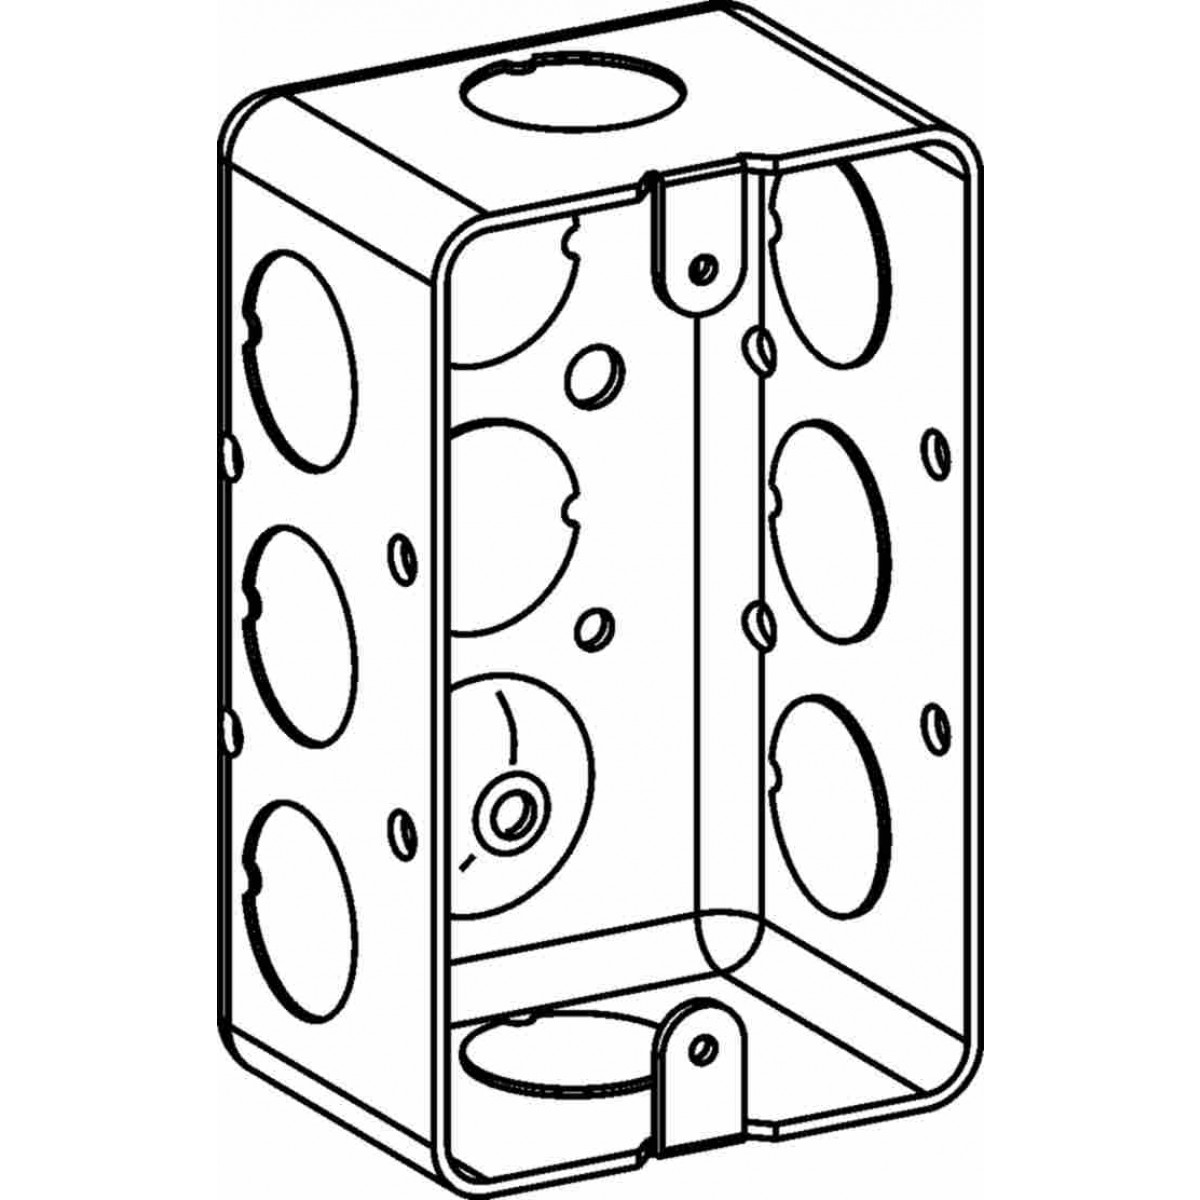 wdhb-1-50 - handy boxes - electrical junction boxes